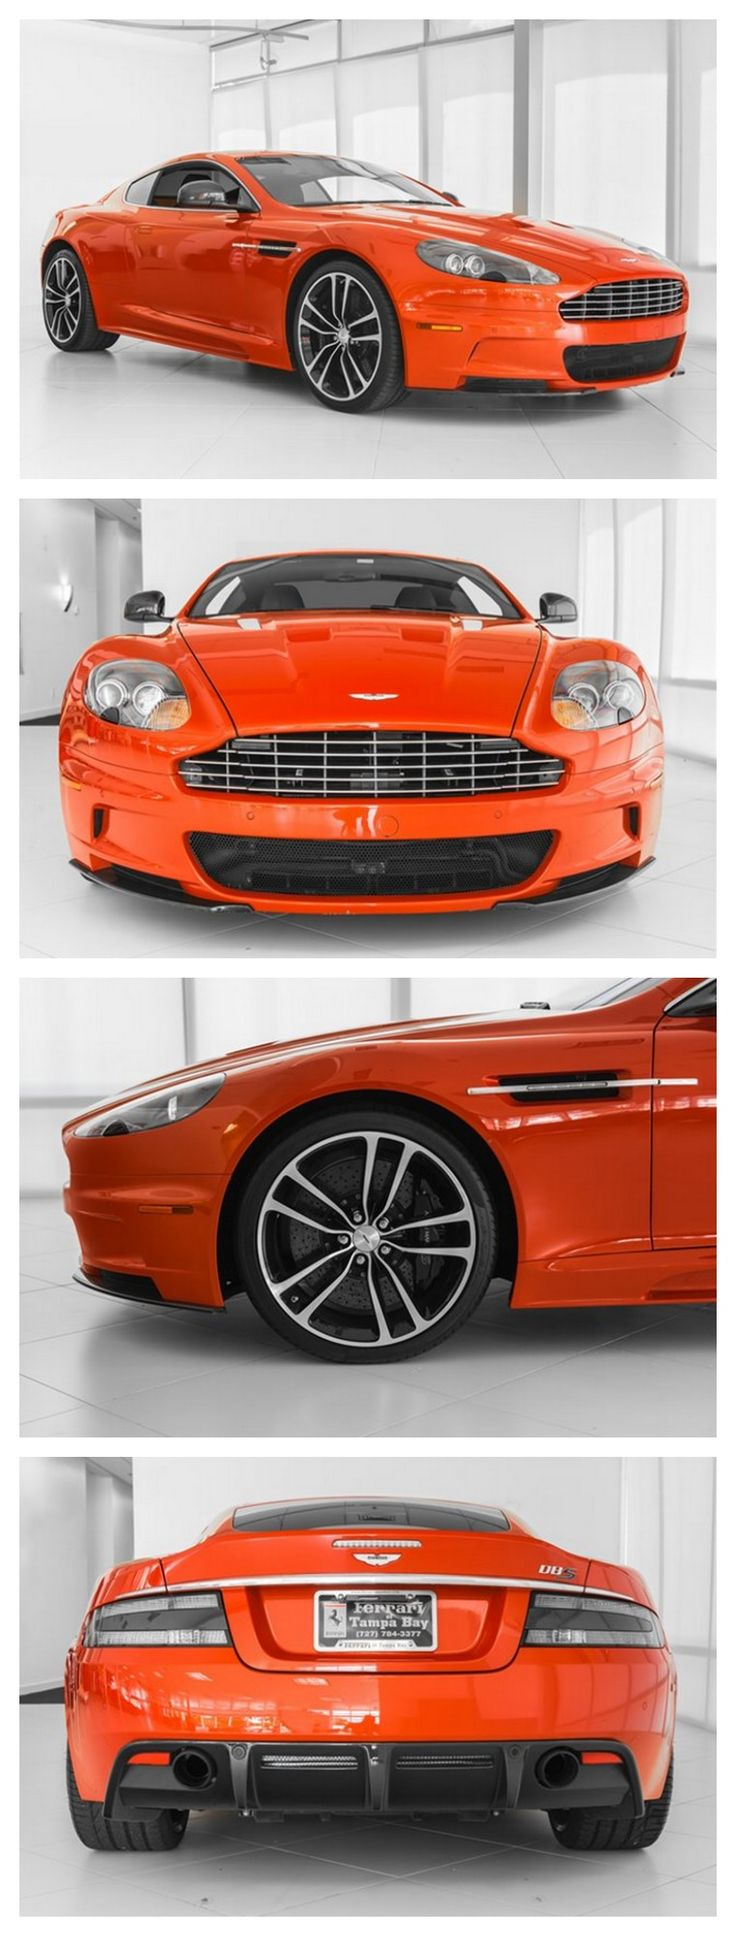 Sublime Aston Martin DBS Carbon Edition #FastandFuriousFriday